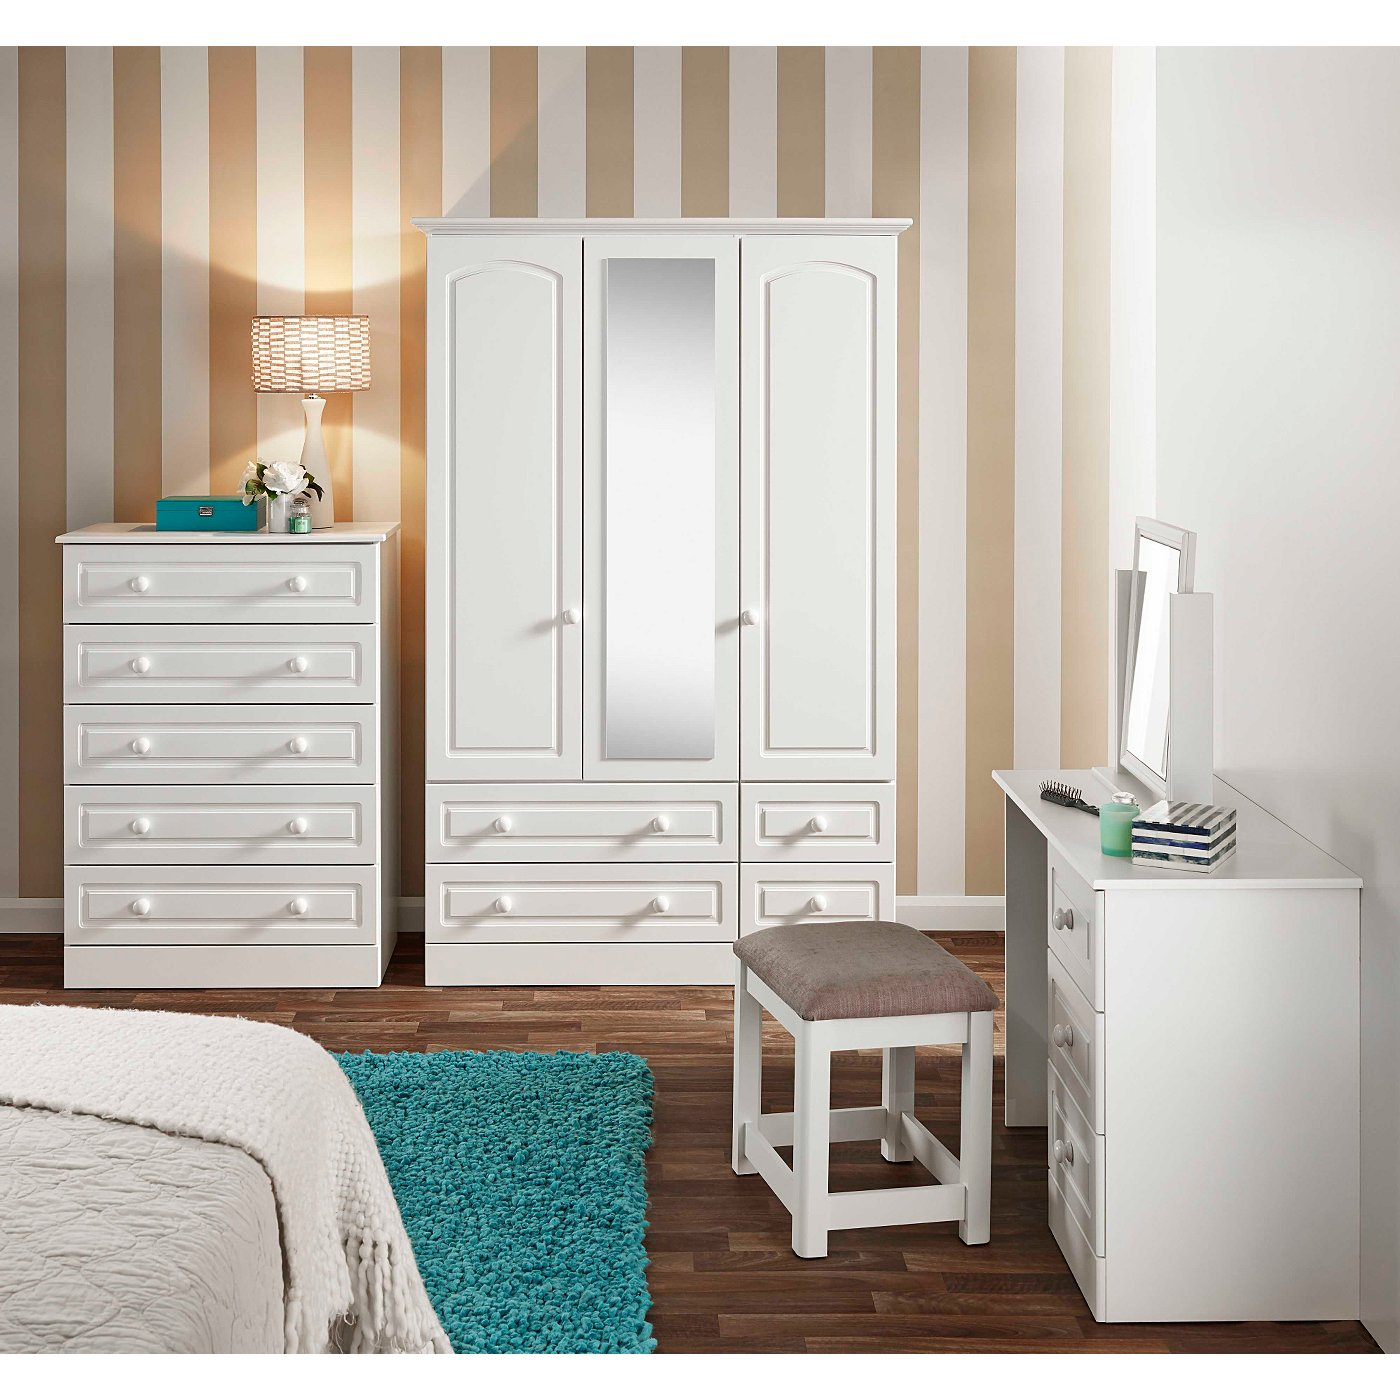 White Bedroom Furniture Home Garden Gee At Asda. White Bedroom Furniture Sets Asda   Bedroom Design